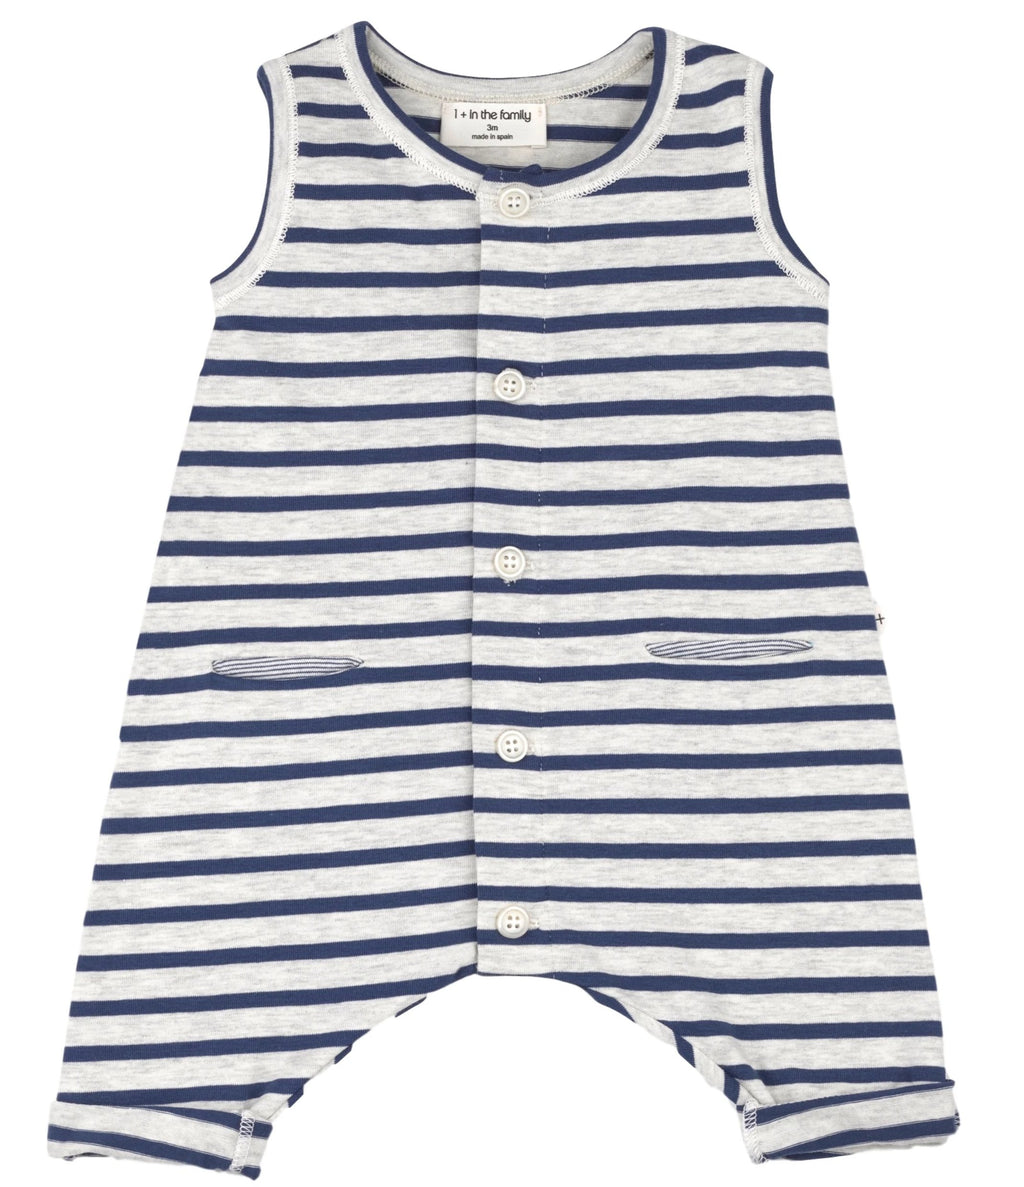 One + In the Family Baby Boy Monaco Sleeveless Romper